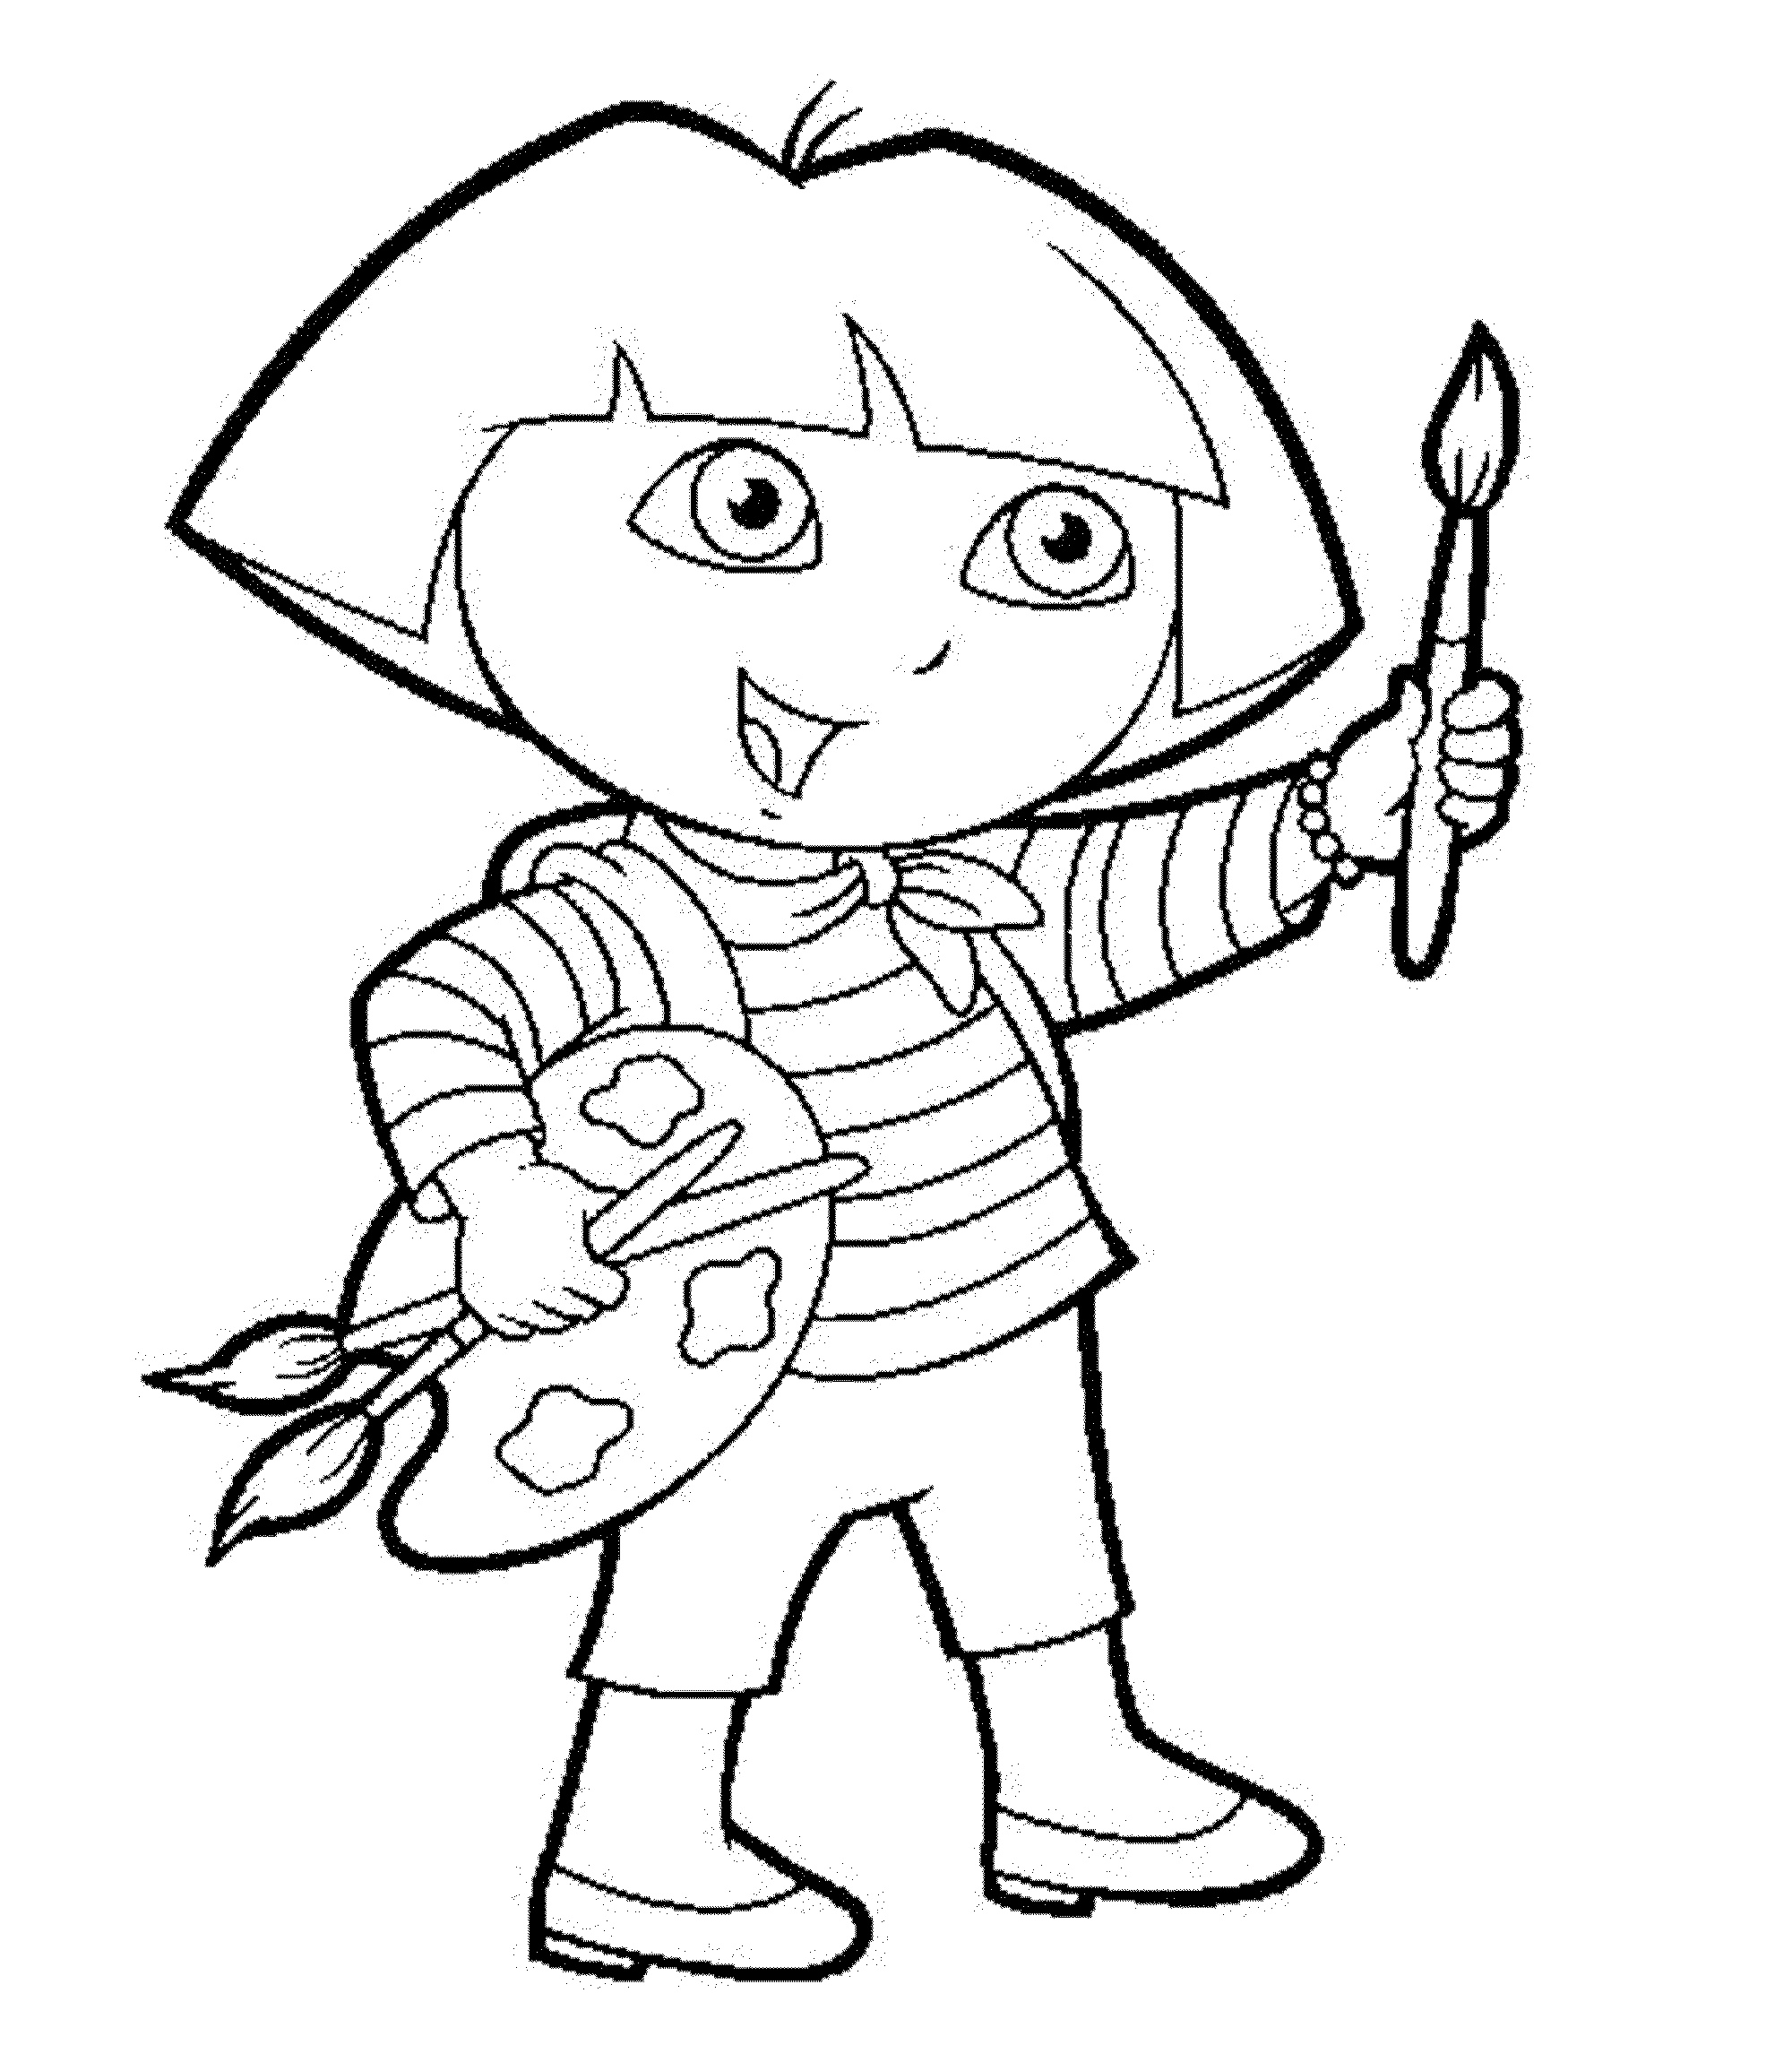 dora coloring print download dora coloring pages to learn new things dora coloring 1 2